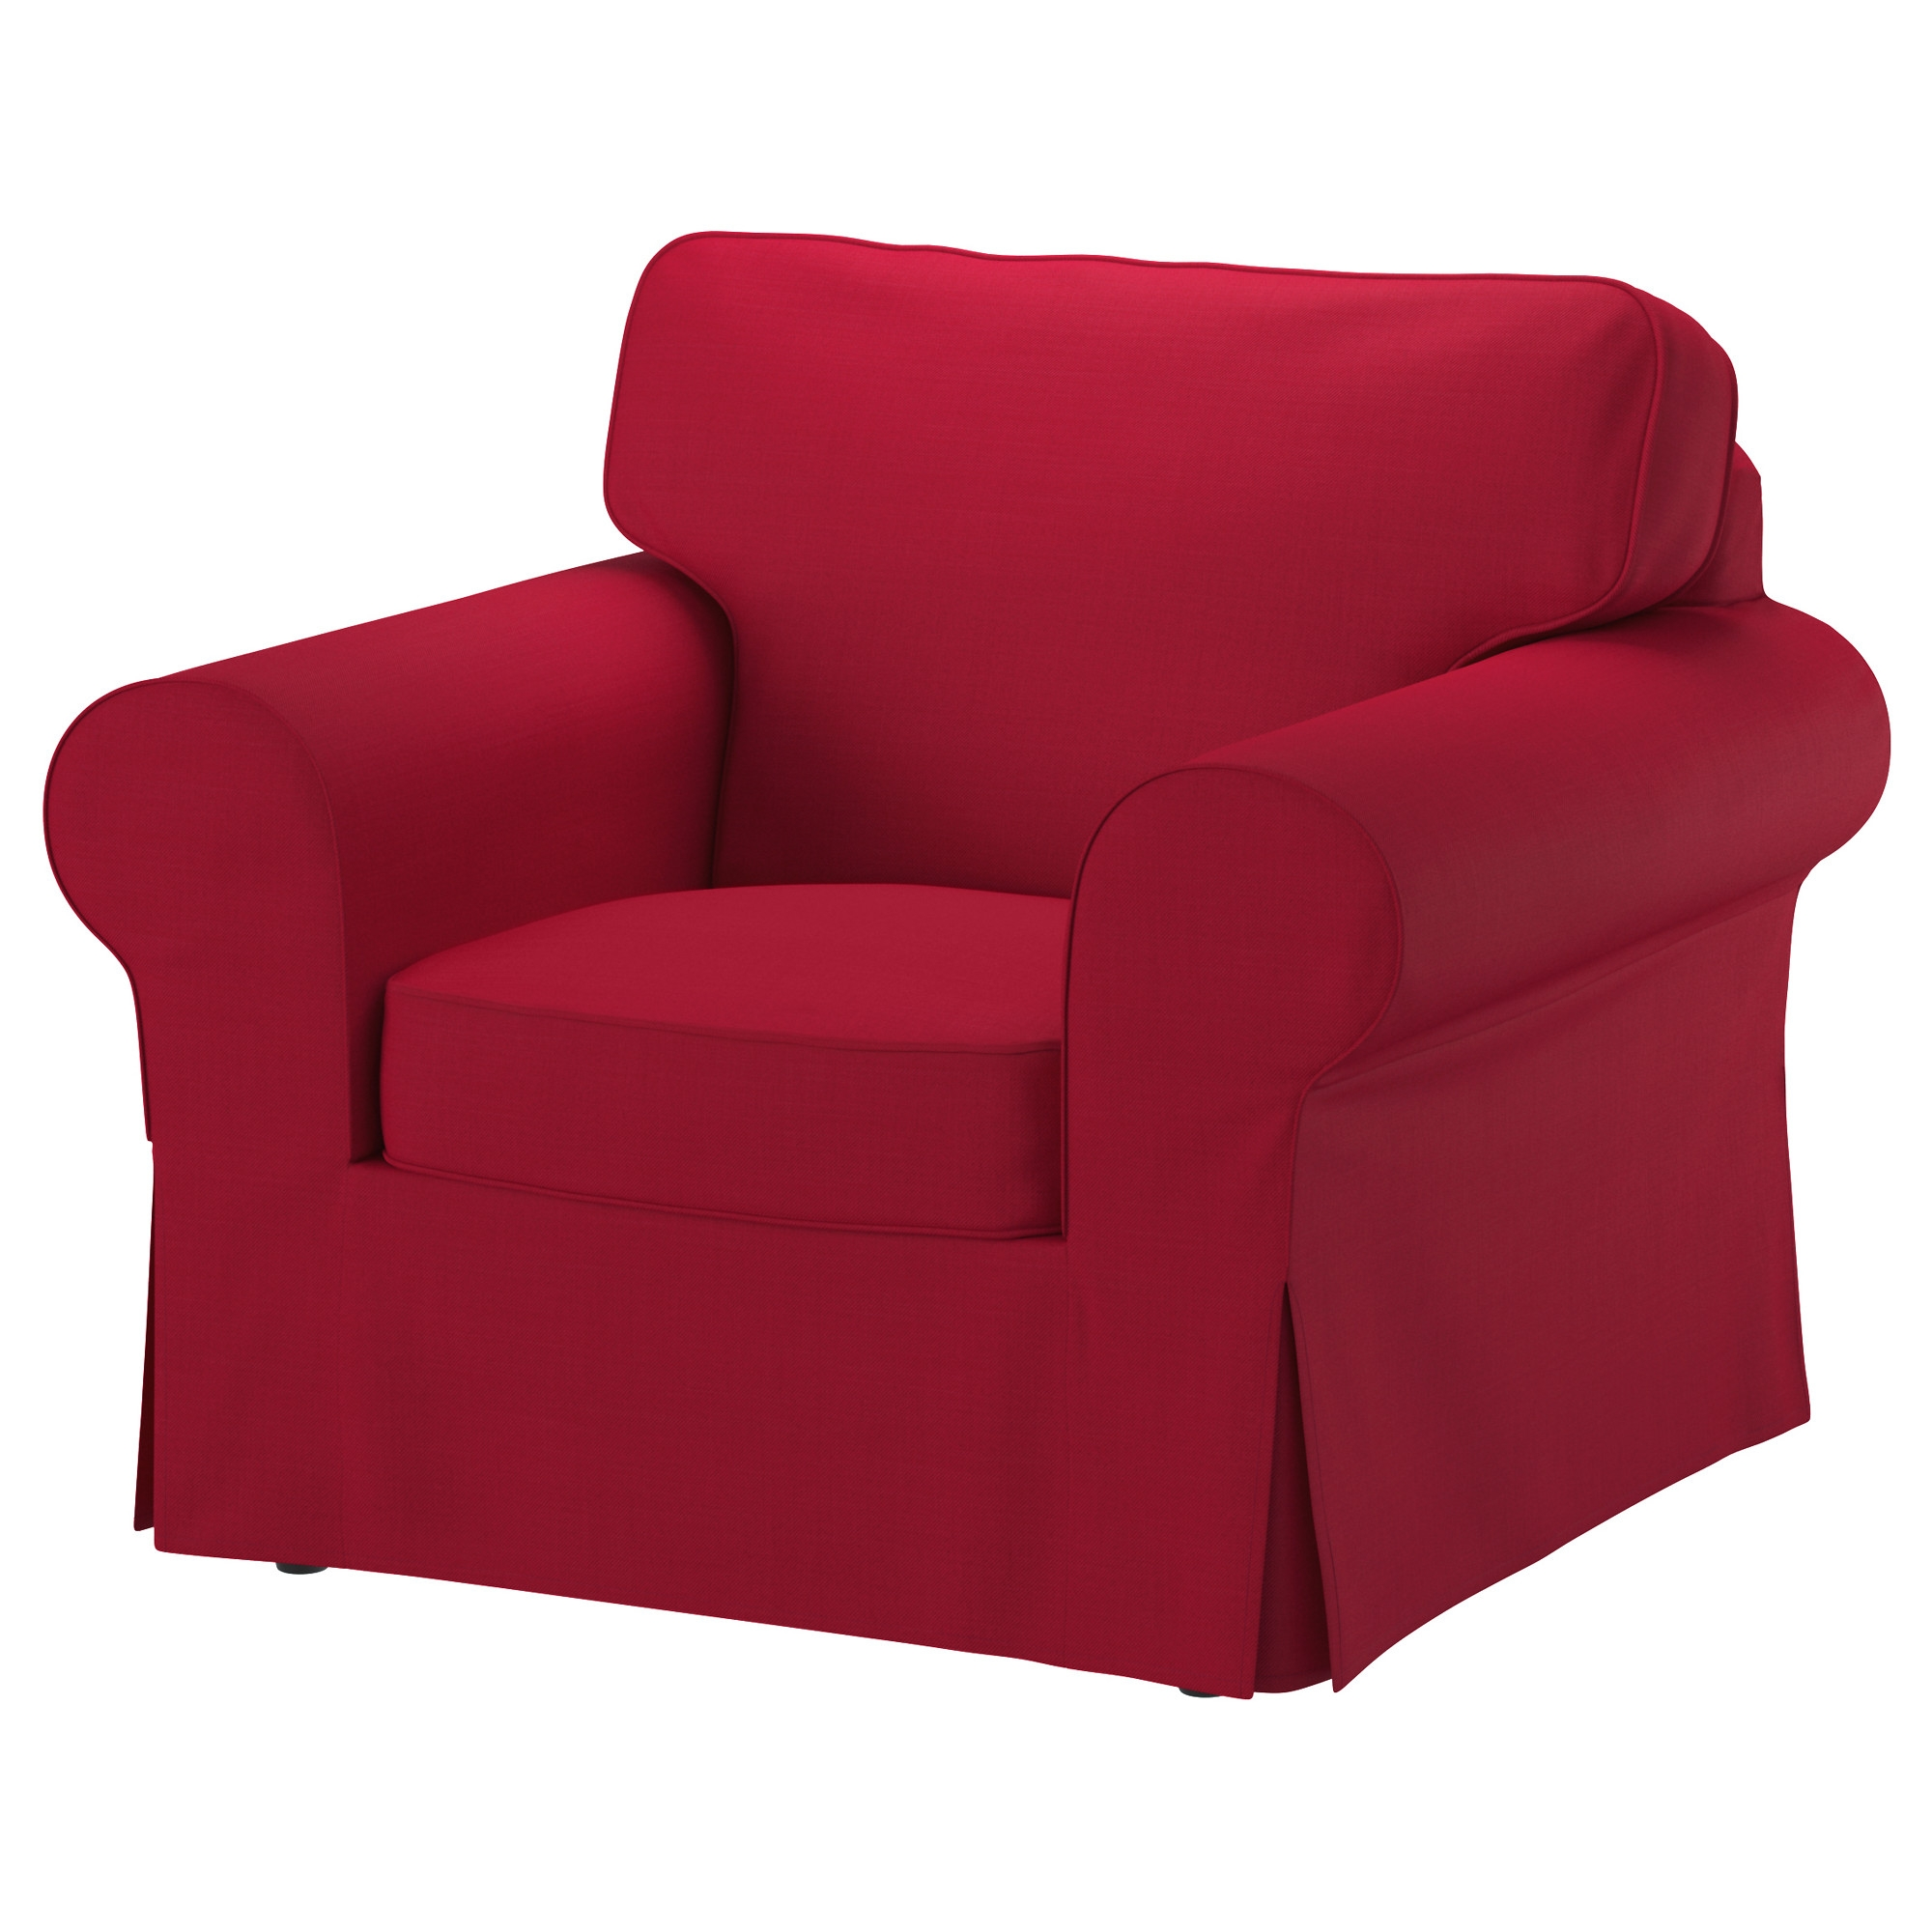 Sofas Center Covers For Sofas And Chairs Sectional With Inside Covers For Sofas And Chairs (View 1 of 15)